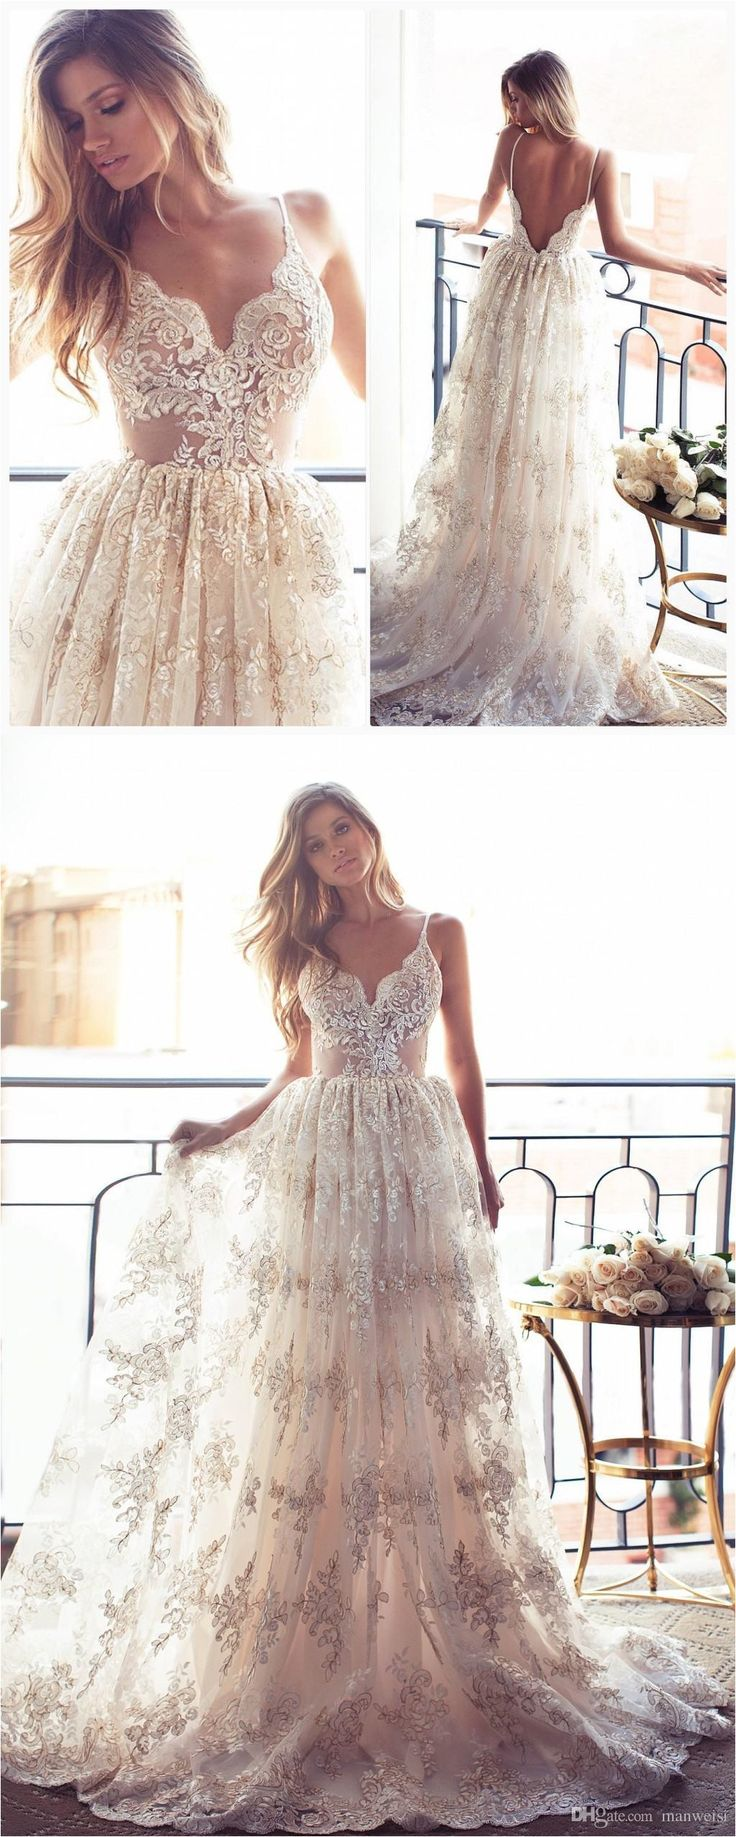 best alexis images on pinterest feminine fashion ball gown and